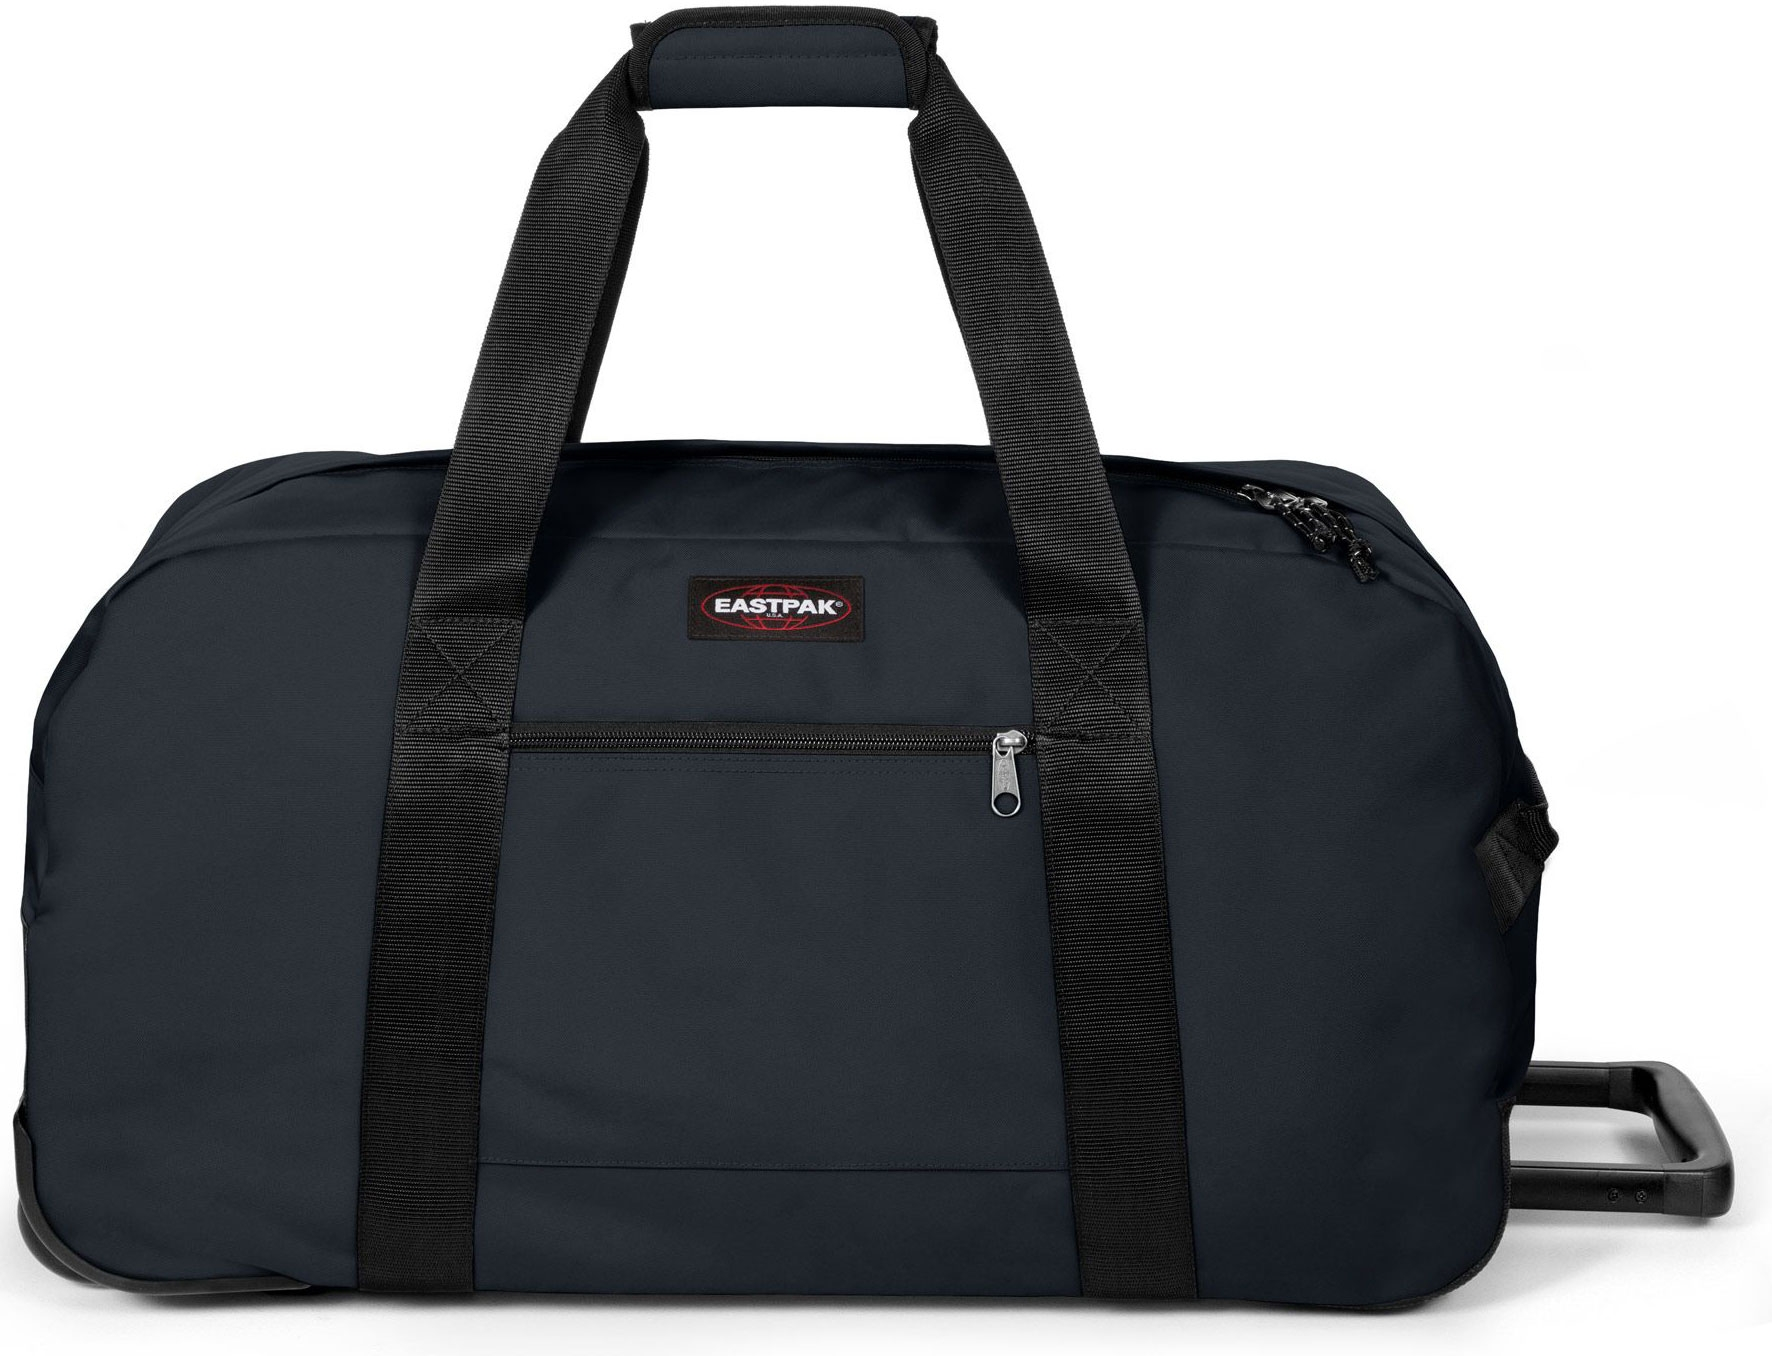 EASTPAK CONTAINER Grand sac XL avec trolley